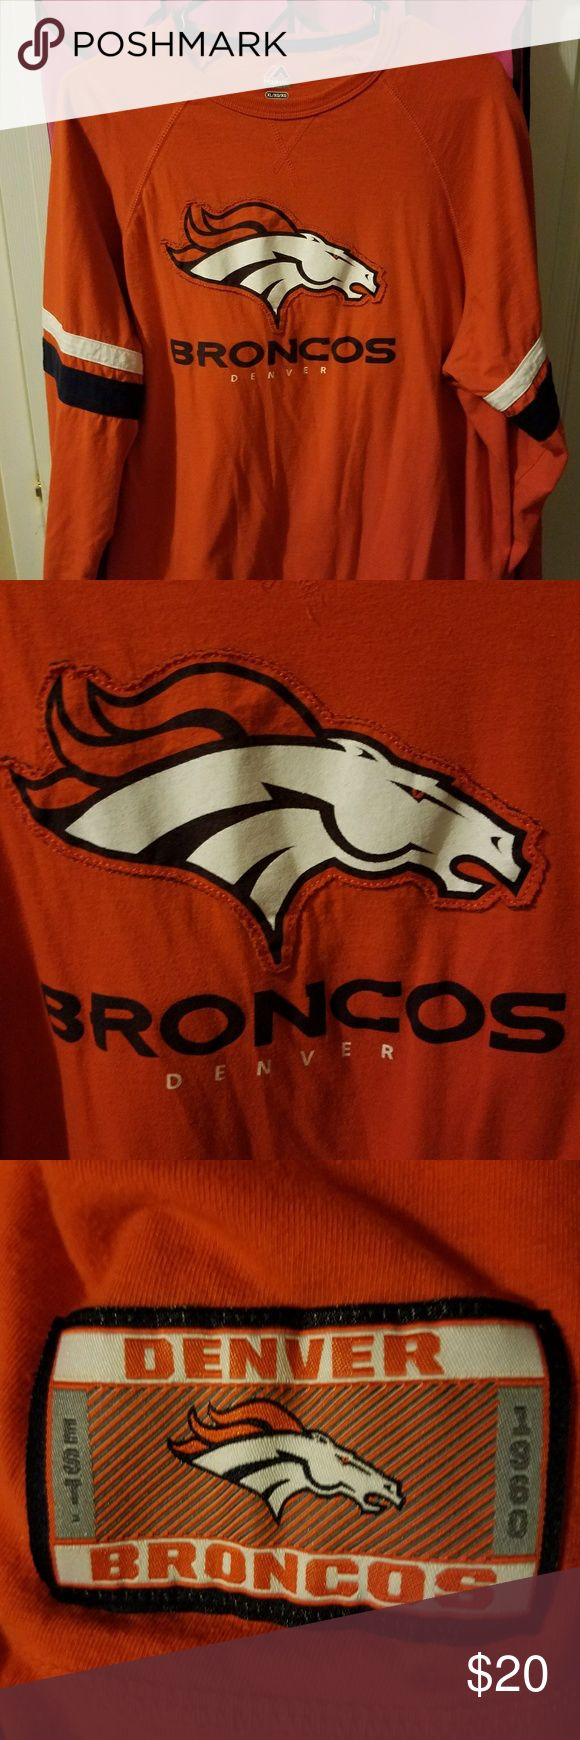 Men's Denver Broncos t-shirt size XL Men's orange Denver Broncos long sleeve t-shirt size XL. Worn once. Out with Peyton Manning and out with the Broncos. So this very nice expensive shirt can now be a true Broncos fans shirt. EUC. Pet free smoke free home. Majestic Shirts Tees - Long Sleeve